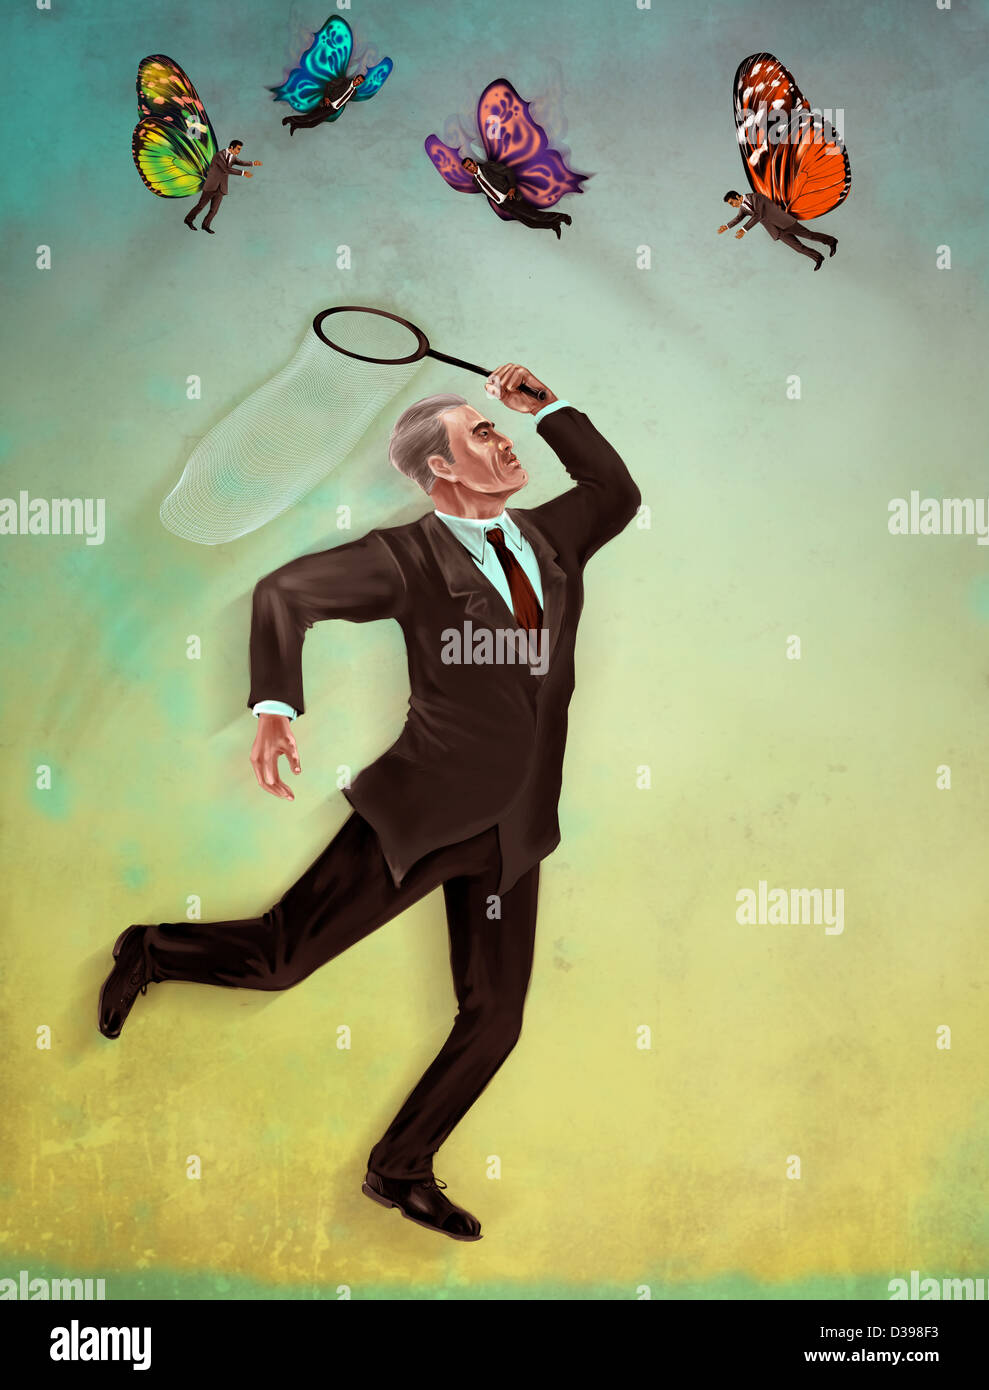 Business employer with butterfly net catching executives representing the concept of recruitment selection - Stock Image